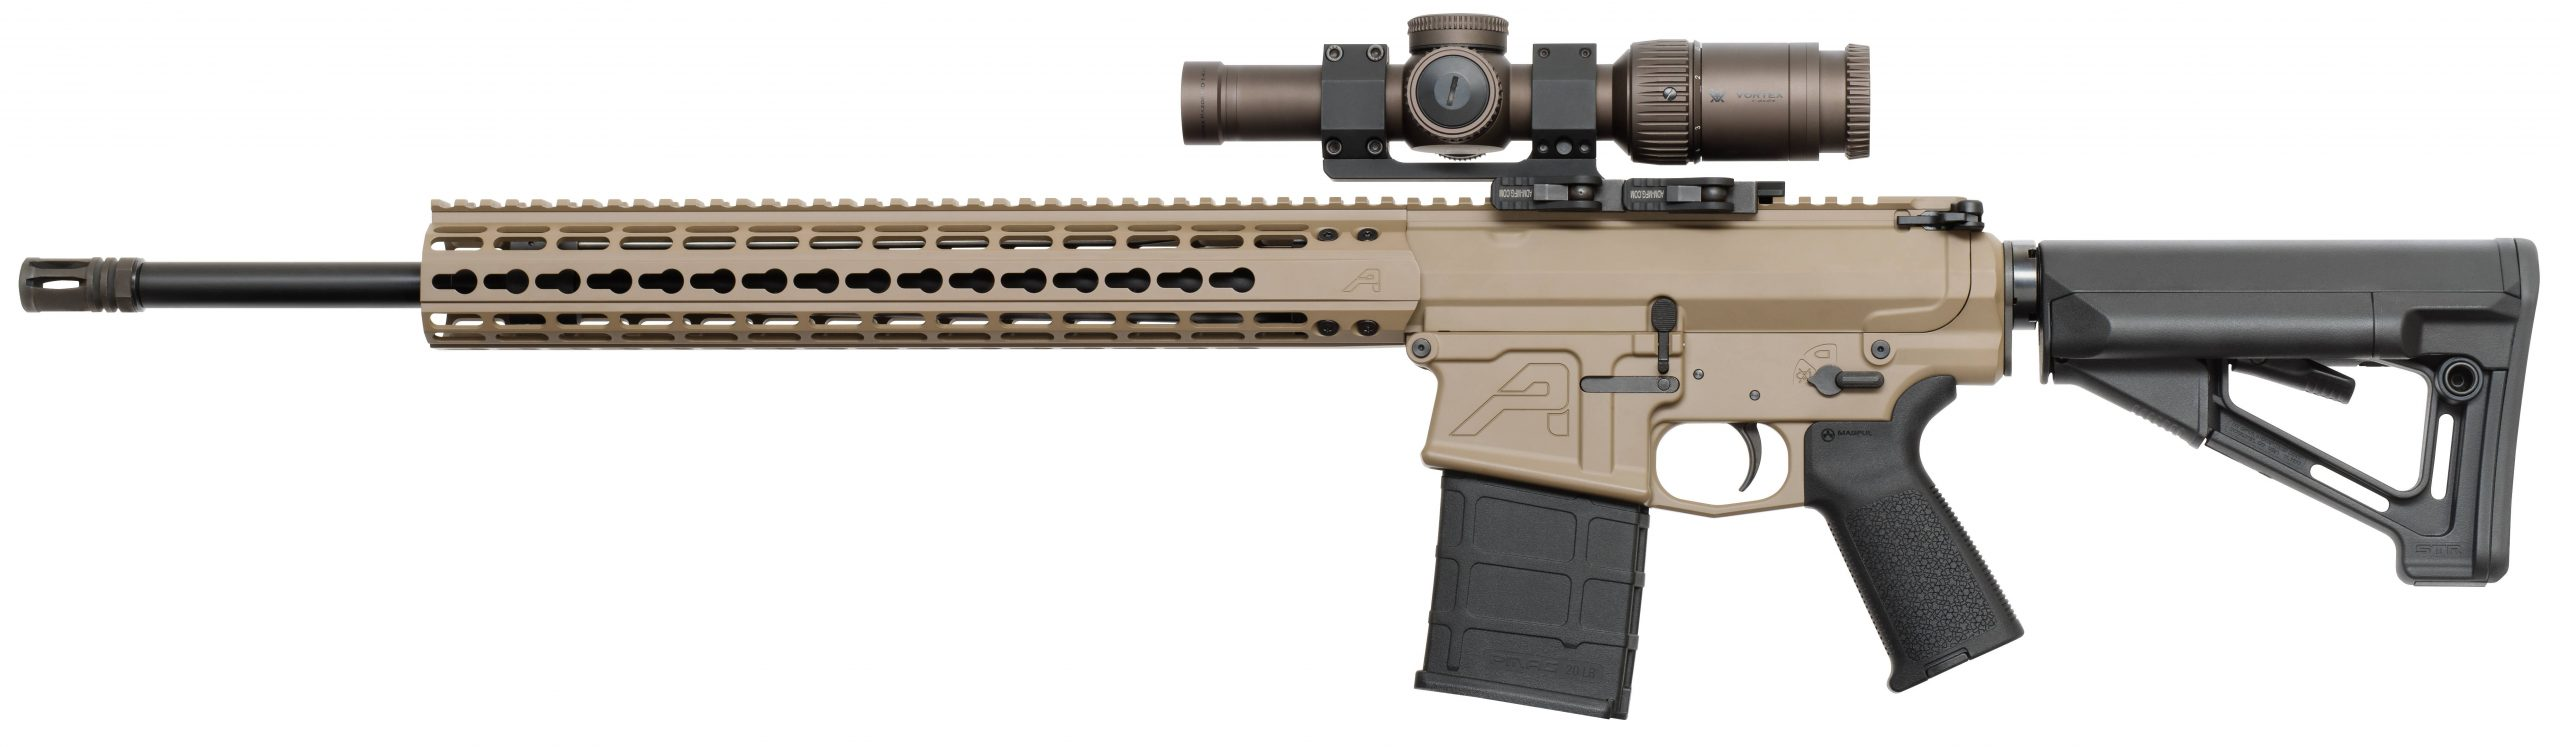 image of Aero Precision M5E1